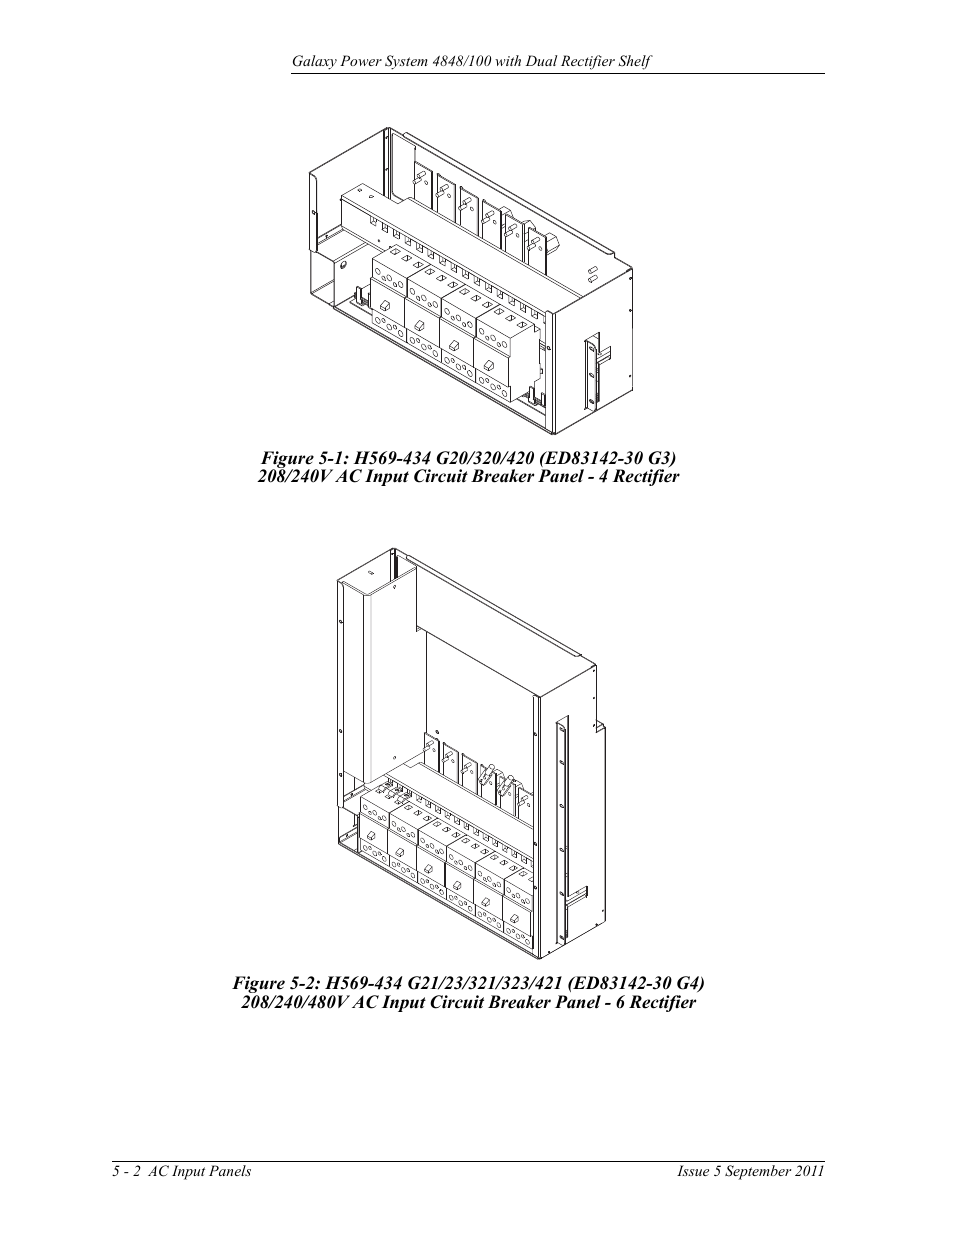 Figure 5 1 H569 434 G20 320 420 Ed83142 30 G3 Ge Industrial A 240v Circuit Breaker Panel Solutions Gps 4848 100 Users Guide Dual Rectifier Shelf User Manual Page 40 118